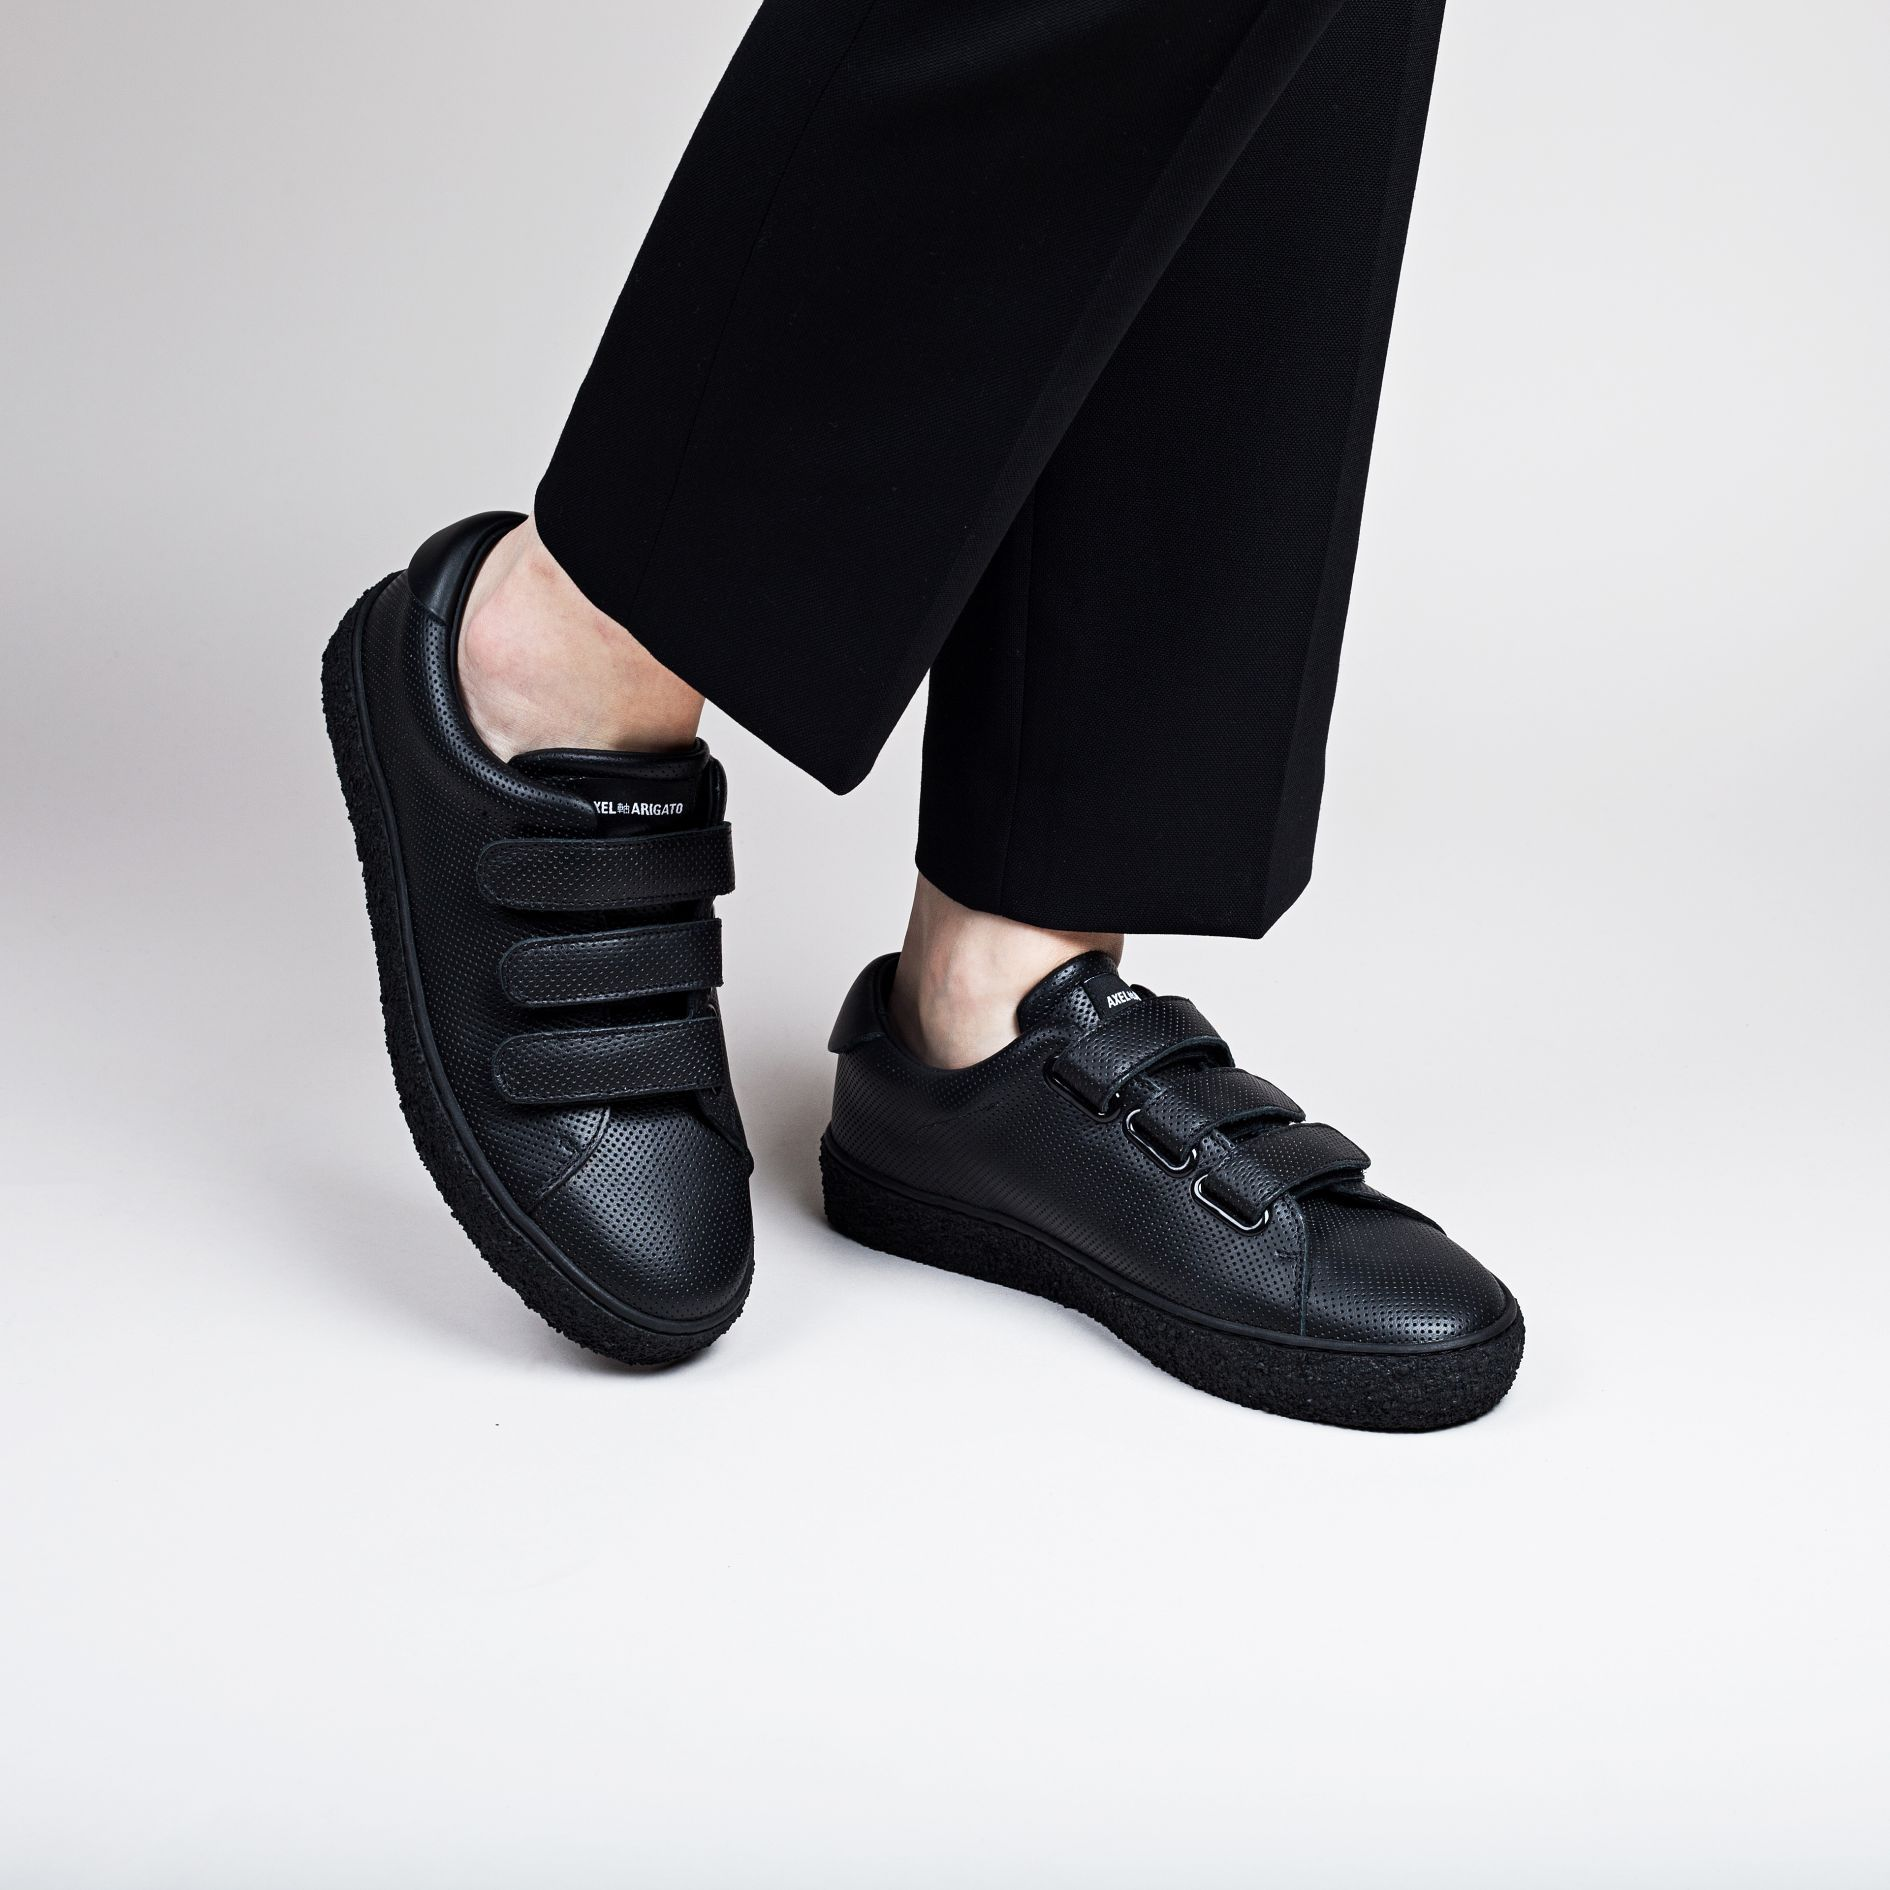 ff2cbcda1 AXEL ARIGATO - Tennis Sneaker Black Perforated Leather   Shoes S/S ...